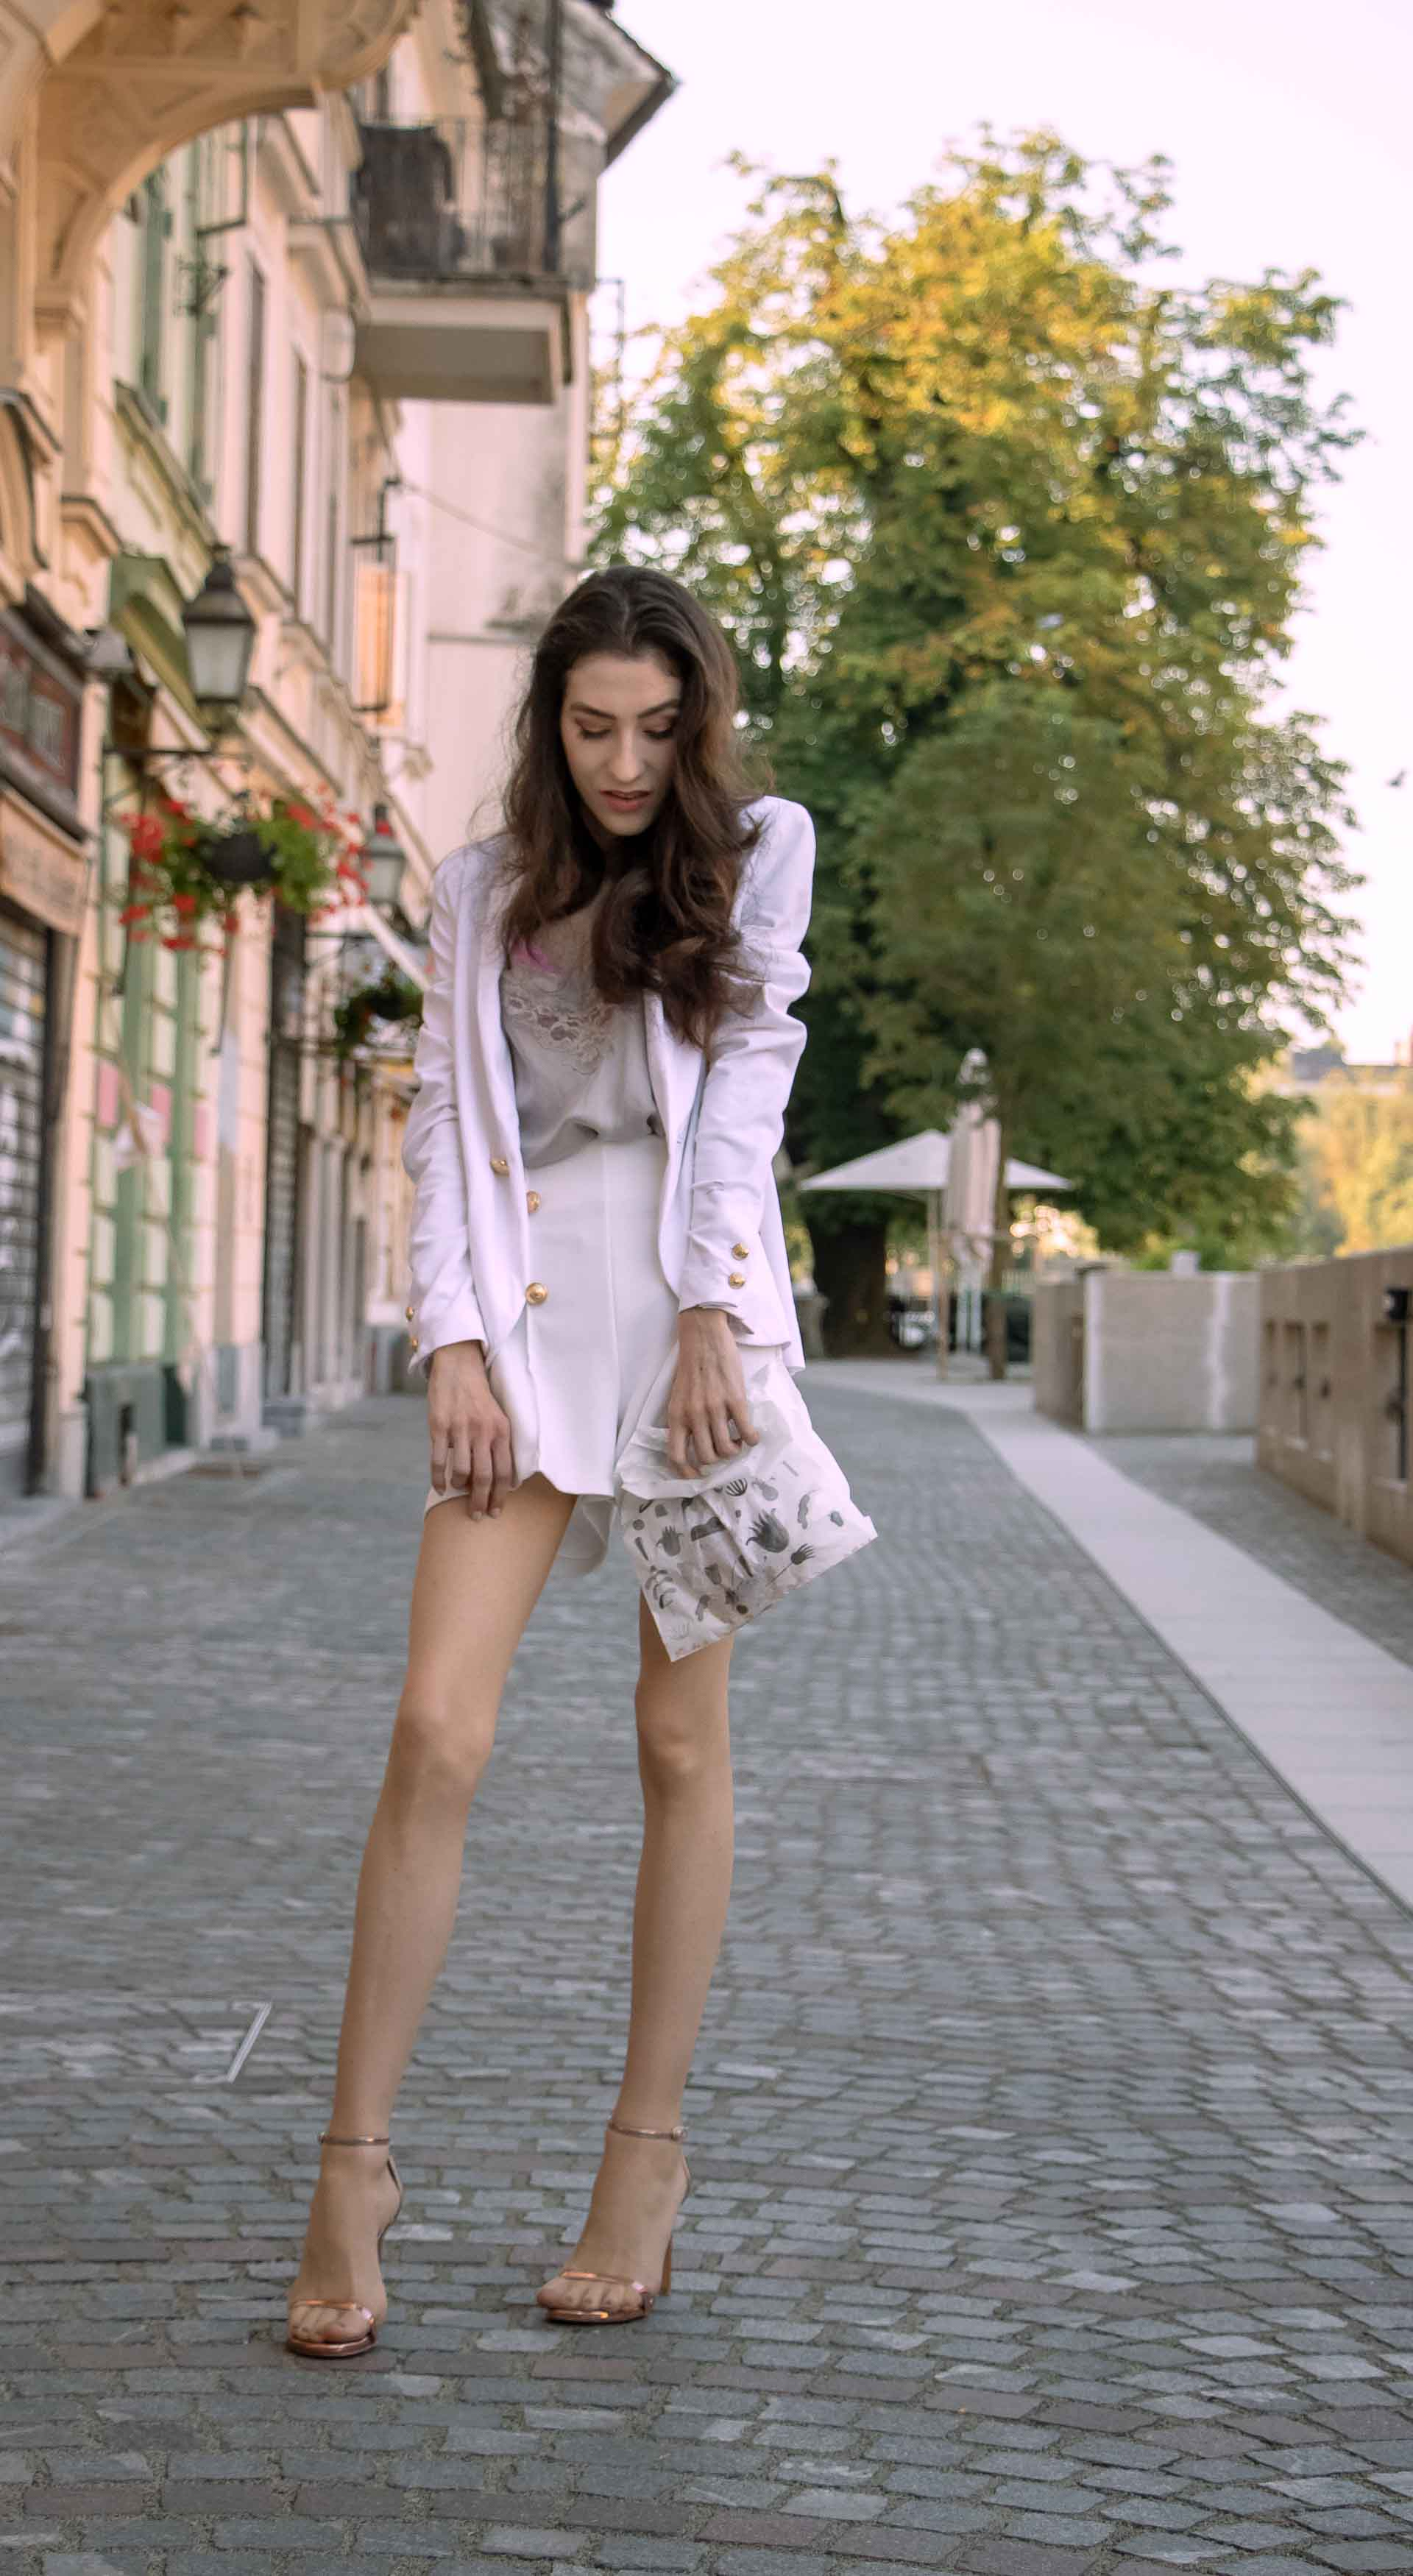 Beautiful Slovenian Fashion Blogger Veronika Lipar of Brunette from Wall dressed in all in white suit, white blazer, white tailored shorts, Stuart Weitzman high shine metallic nudist song sandals, shoulder bag holding a paper bag on the street in the morning after night out clubbing